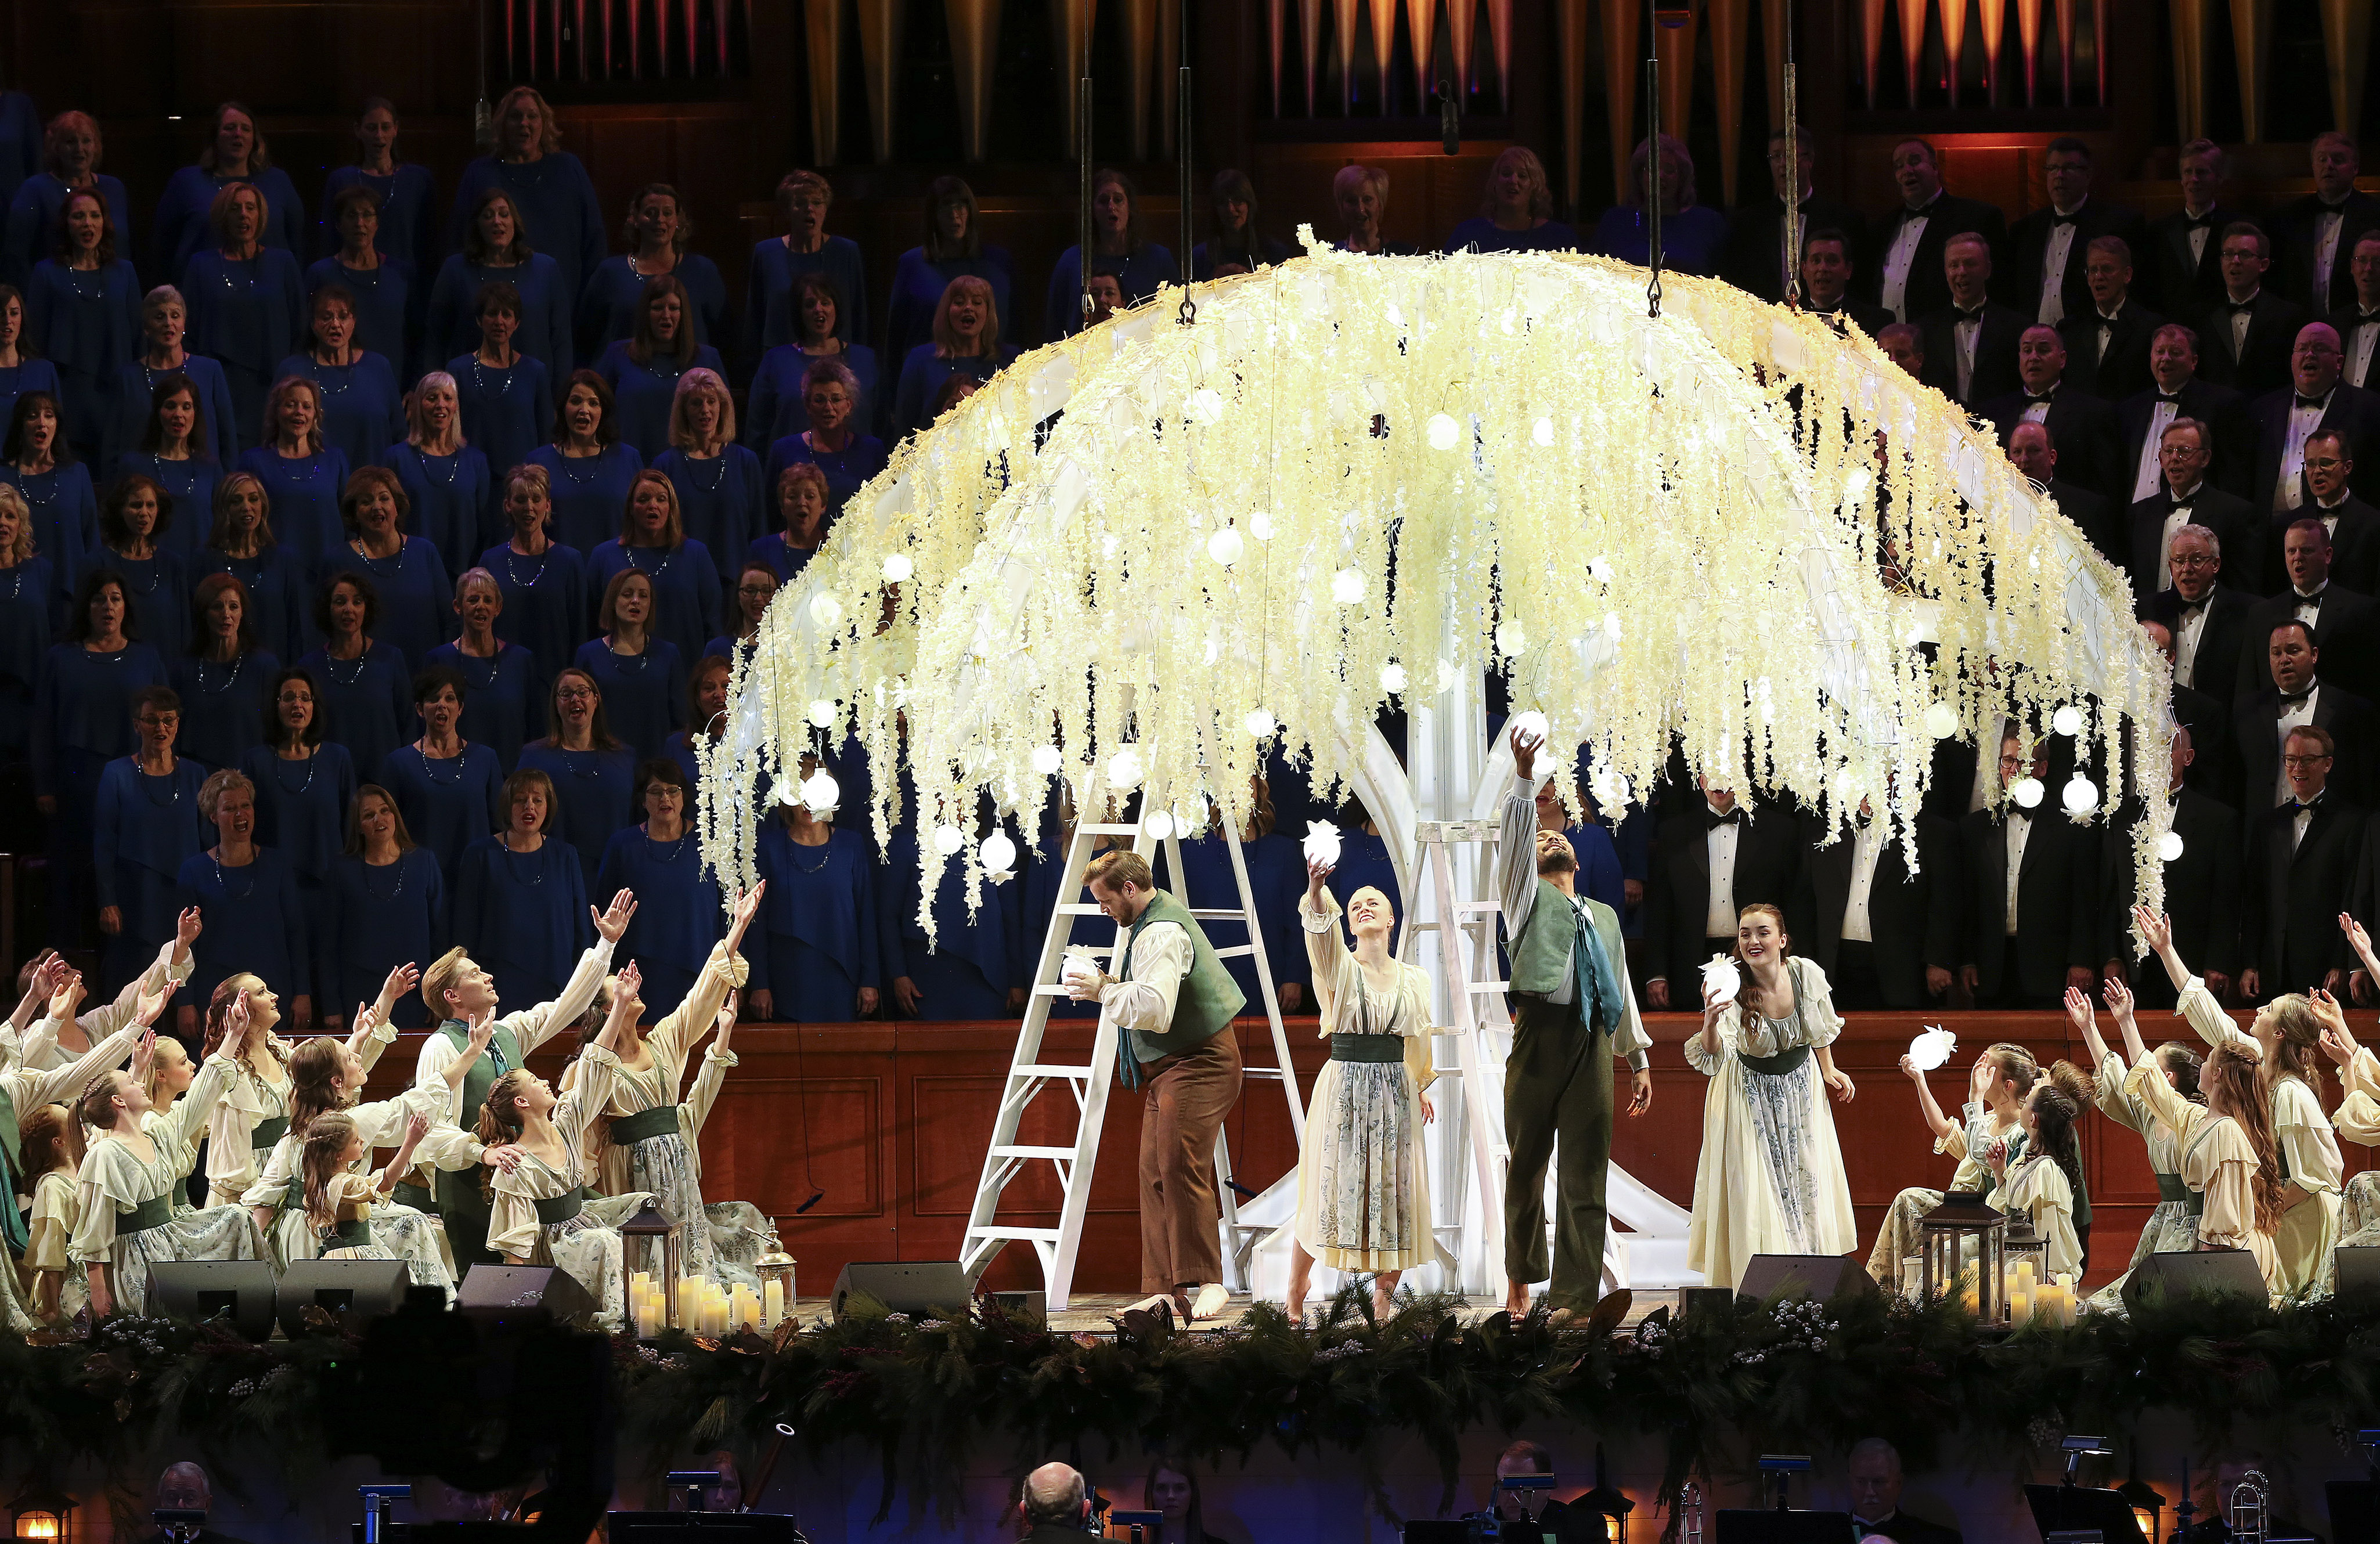 Dancers perform around the Tree of Life with the Tabernacle Choir at Temple Square and Orchestra at Temple Square during a Christmas concert at the Conference Center in Salt Lake City on Thursday, Dec. 12, 2019.